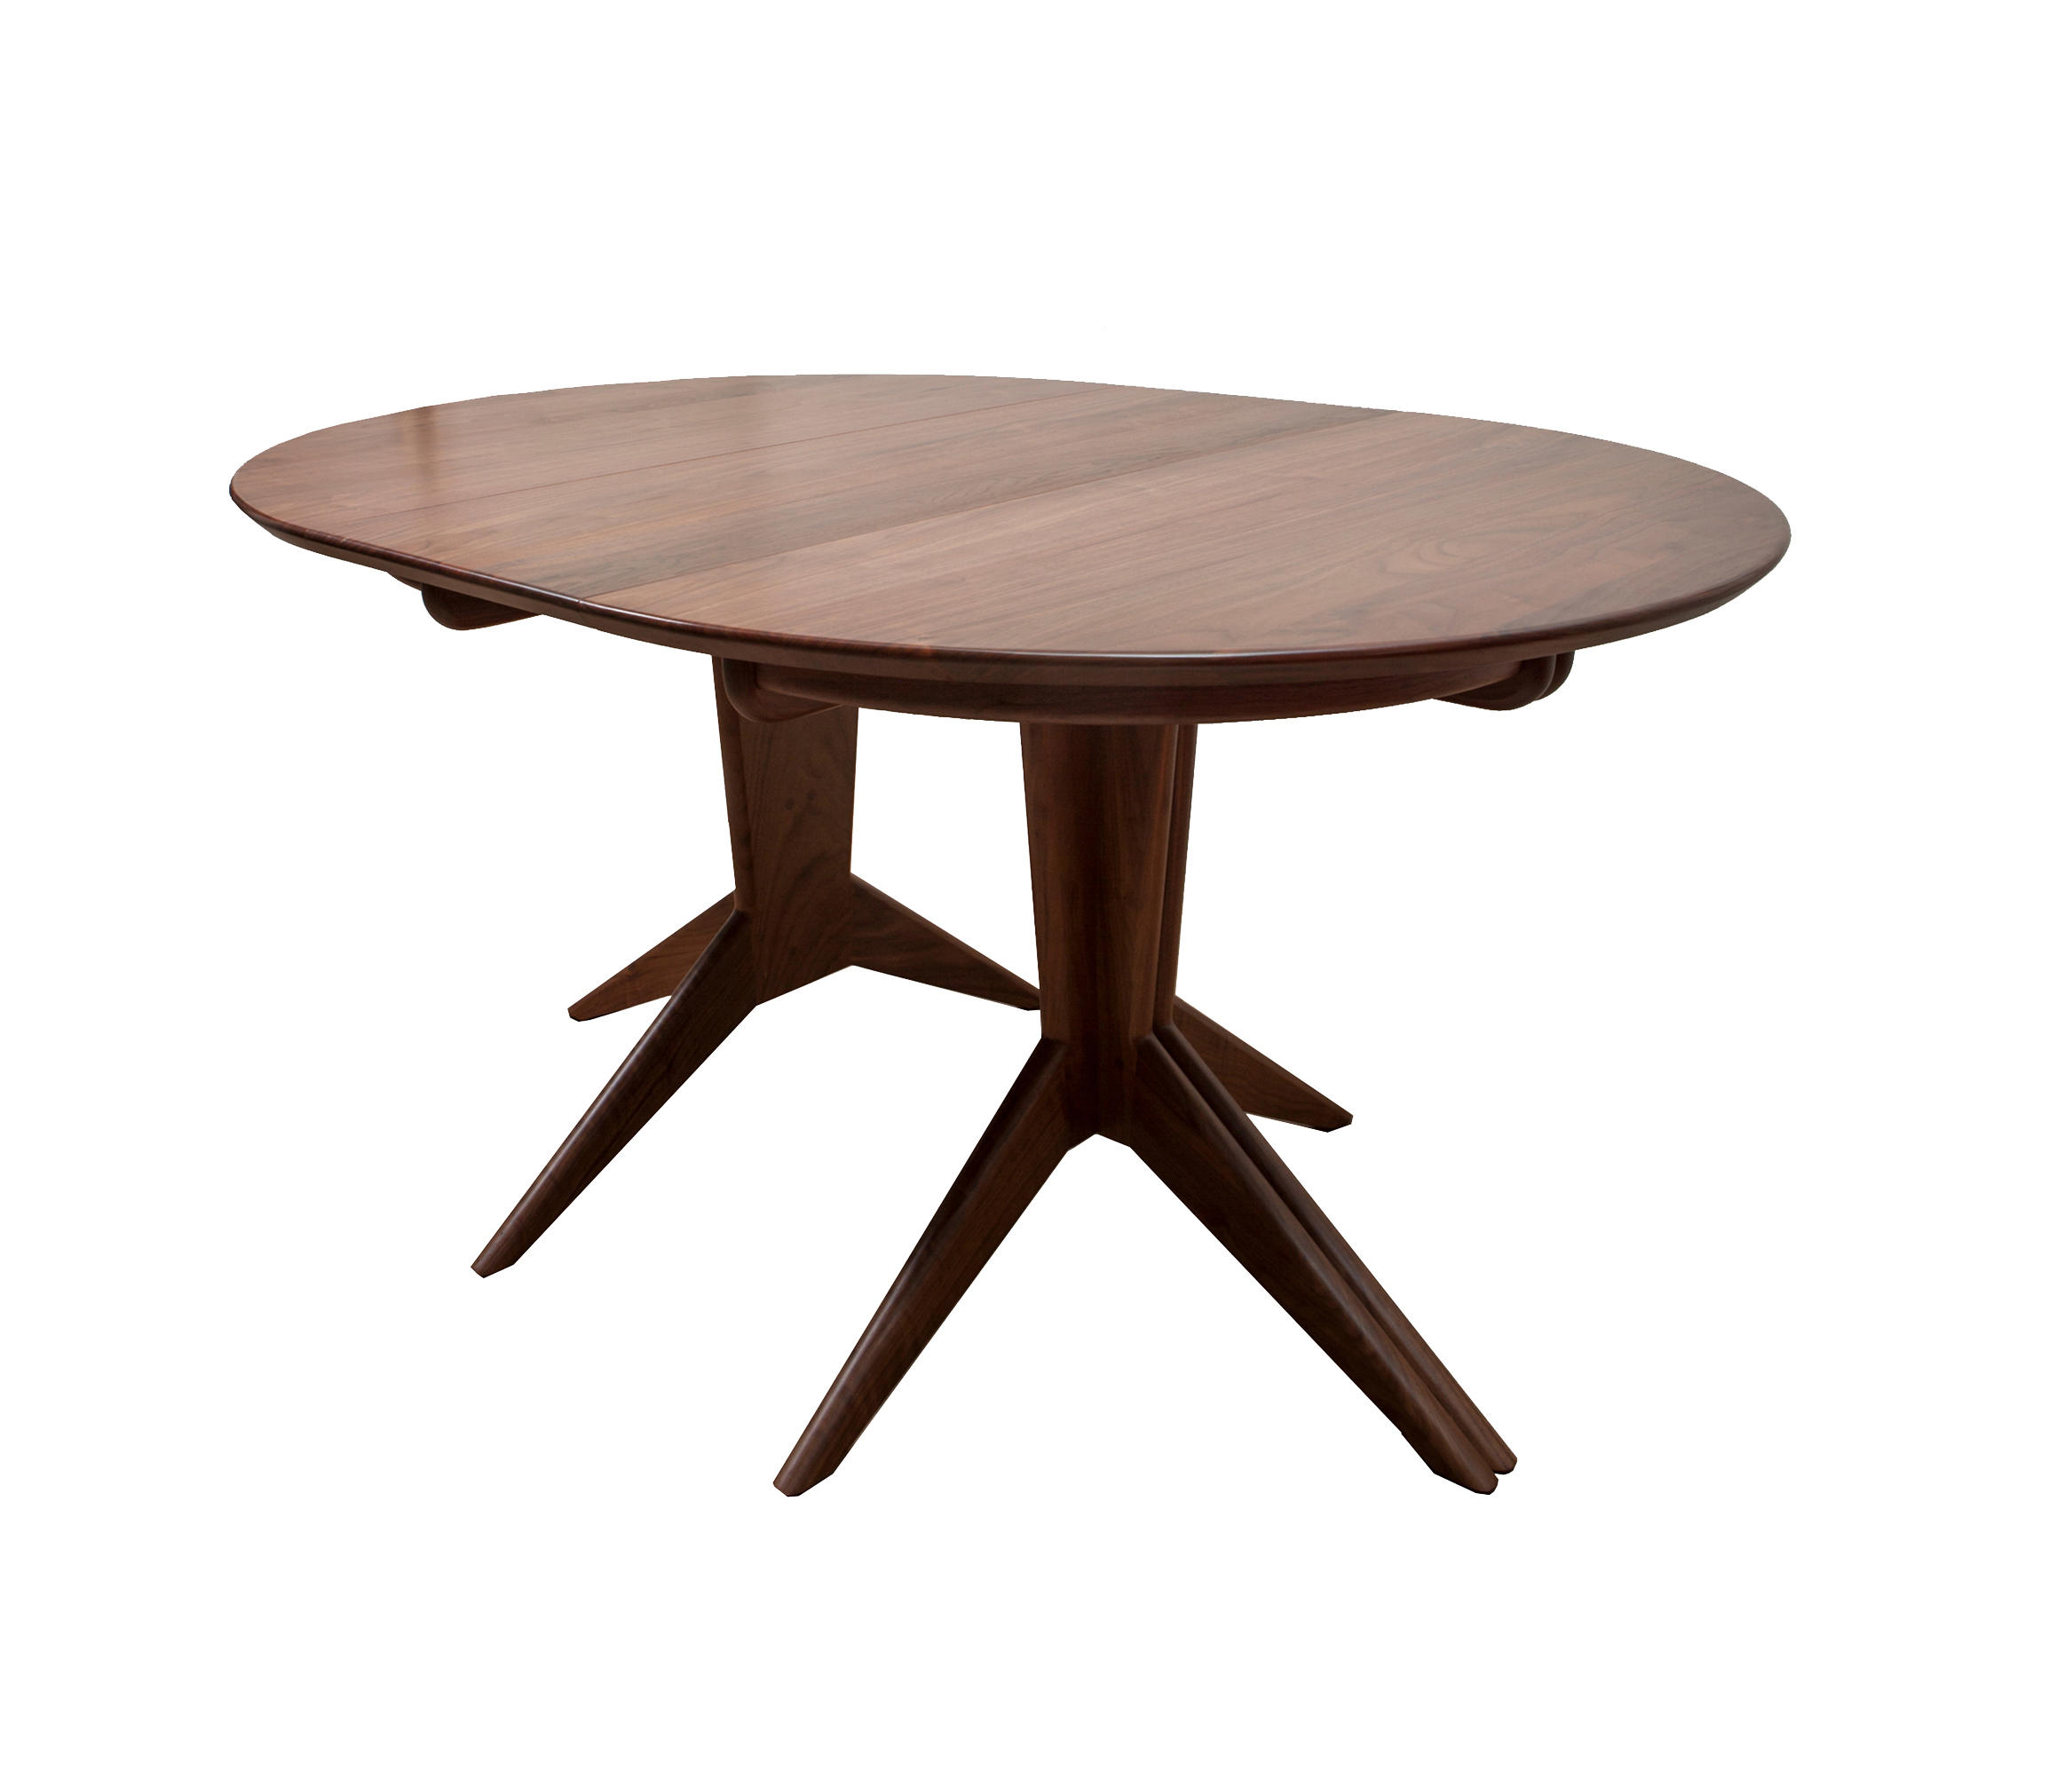 Pedestal extension dining table dining tables from for Designer extending dining tables